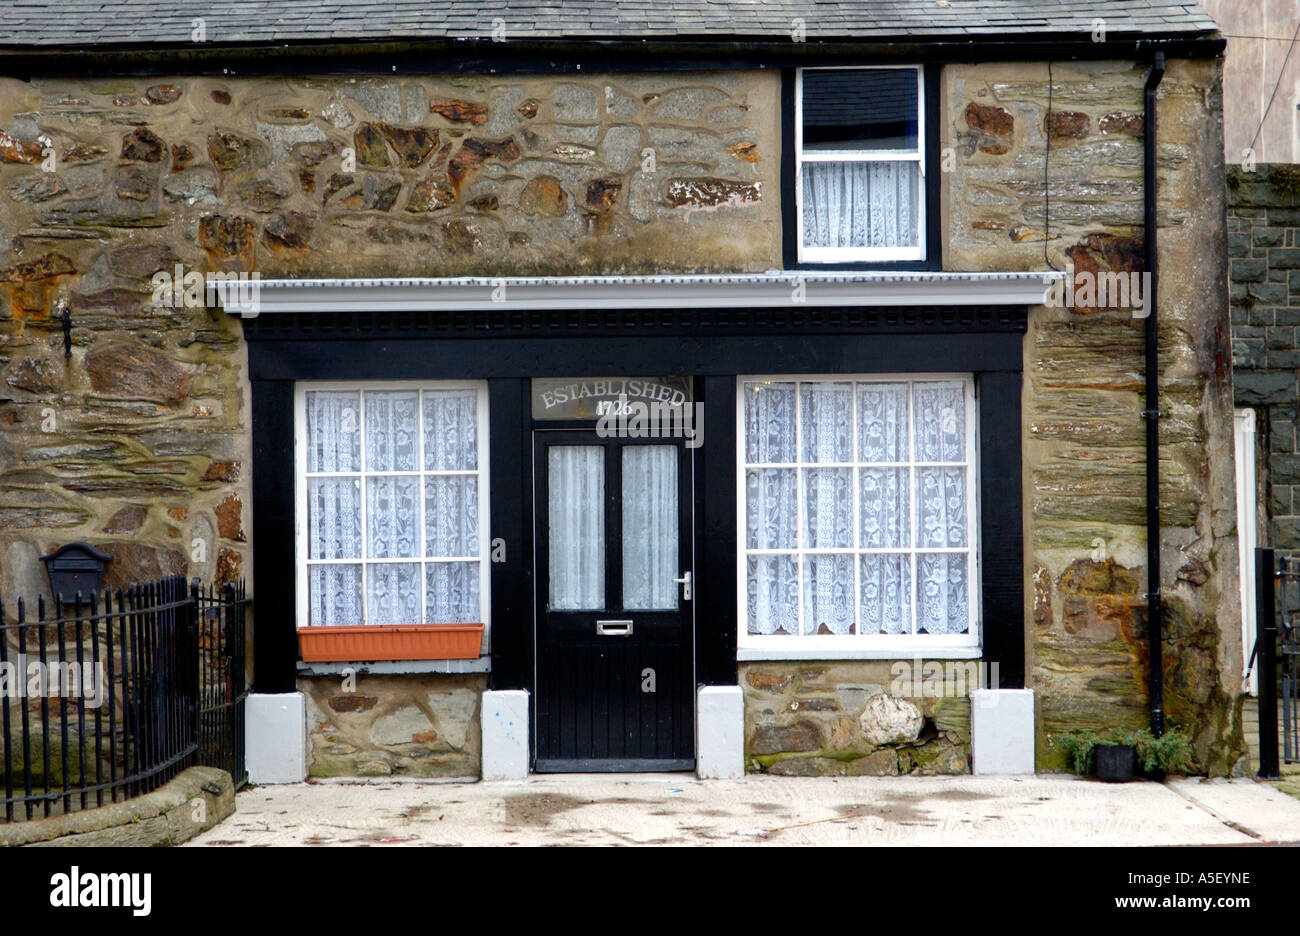 Former local shop established 1726 now converted to house in the Welsh language speaking village Llan Ffestiniog North Wales UK - Stock Image